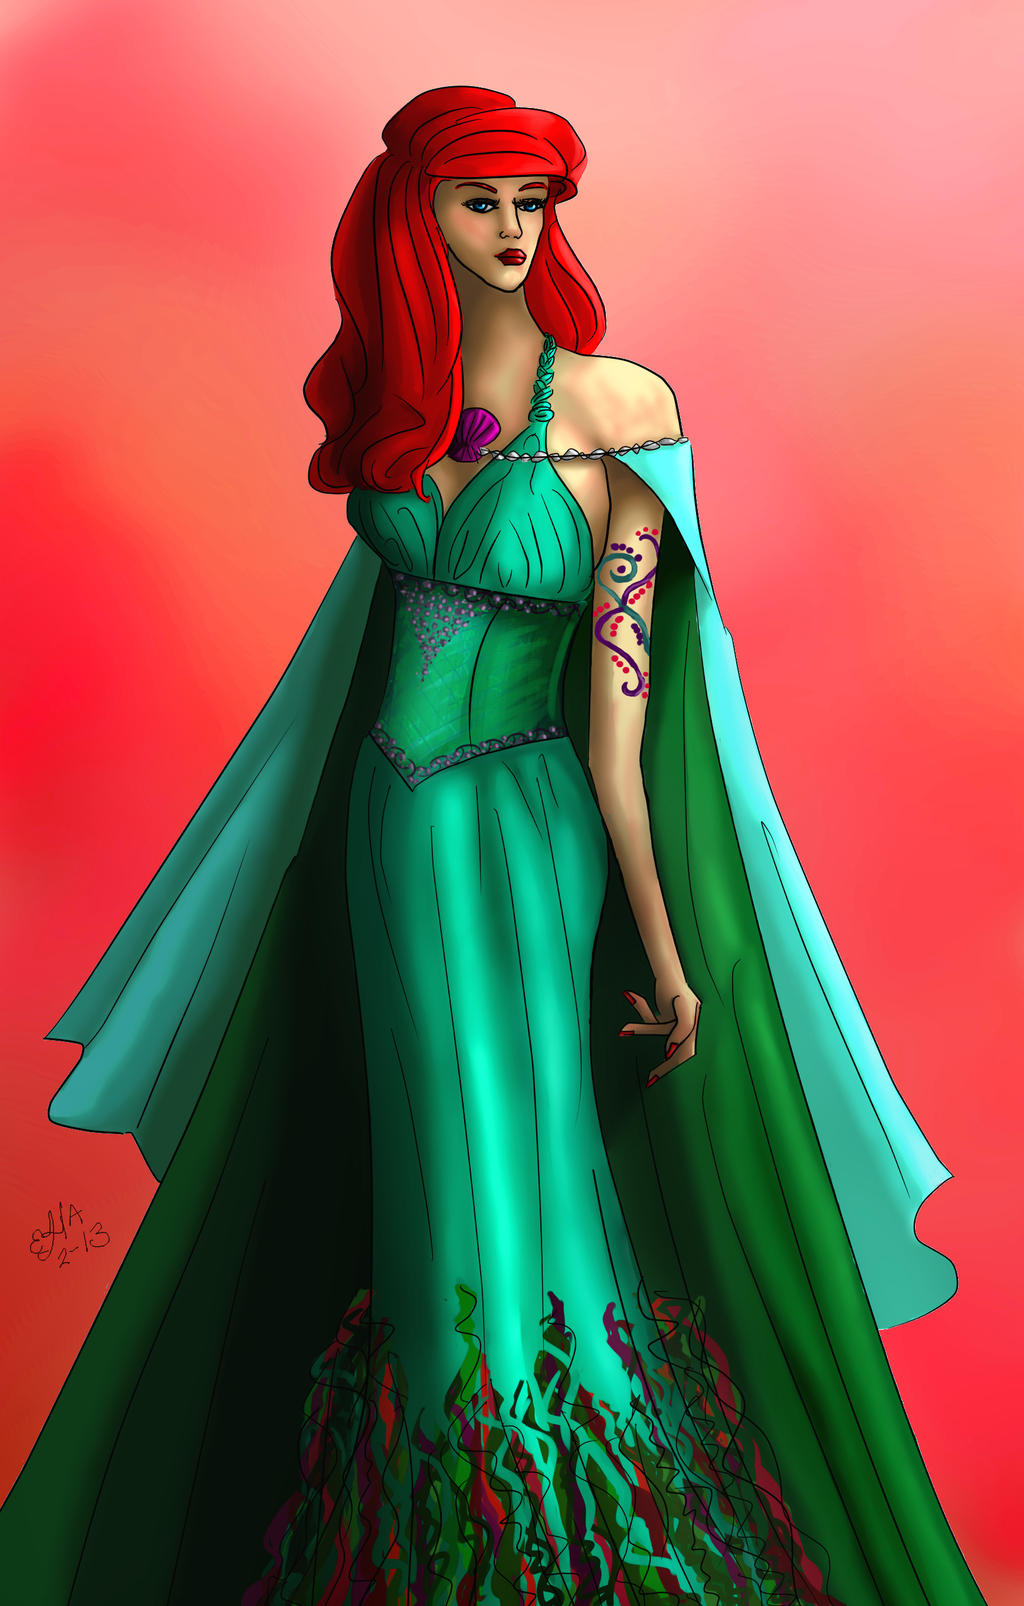 Ariel OUAT Redesign By Elenatintil On DeviantArt